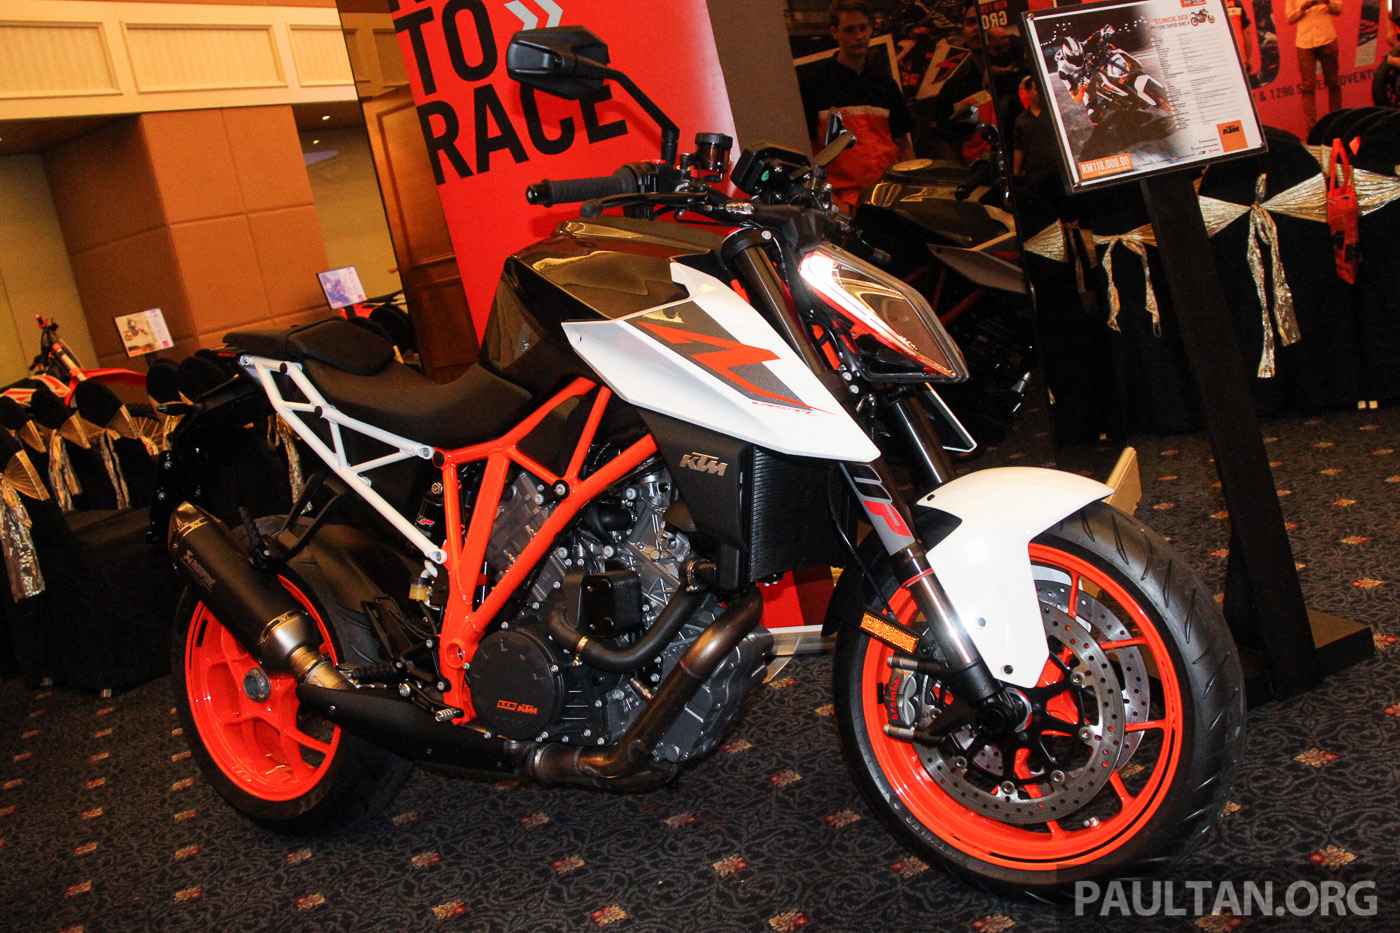 2017 KTM Super Adventure S and Super Duke R Malaysia launch - RM115,000 and RM118,000, incl. GST